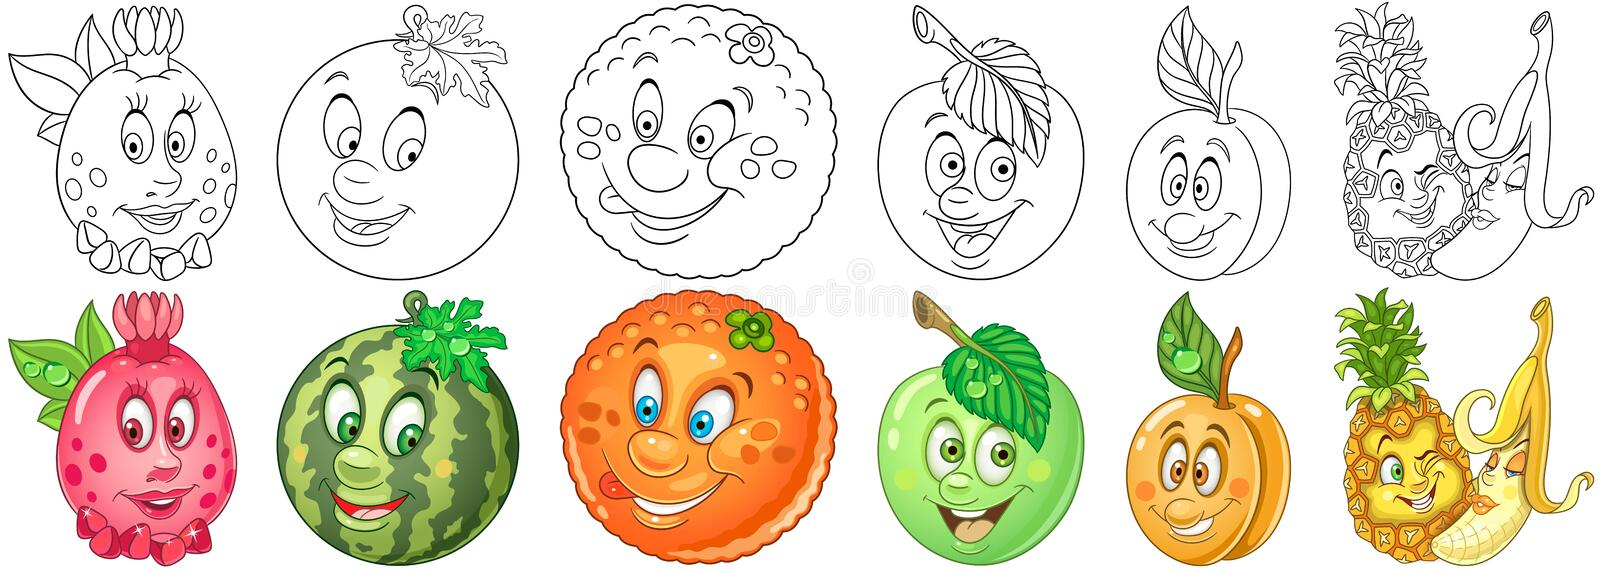 Cartoon Fruits set royalty free stock images